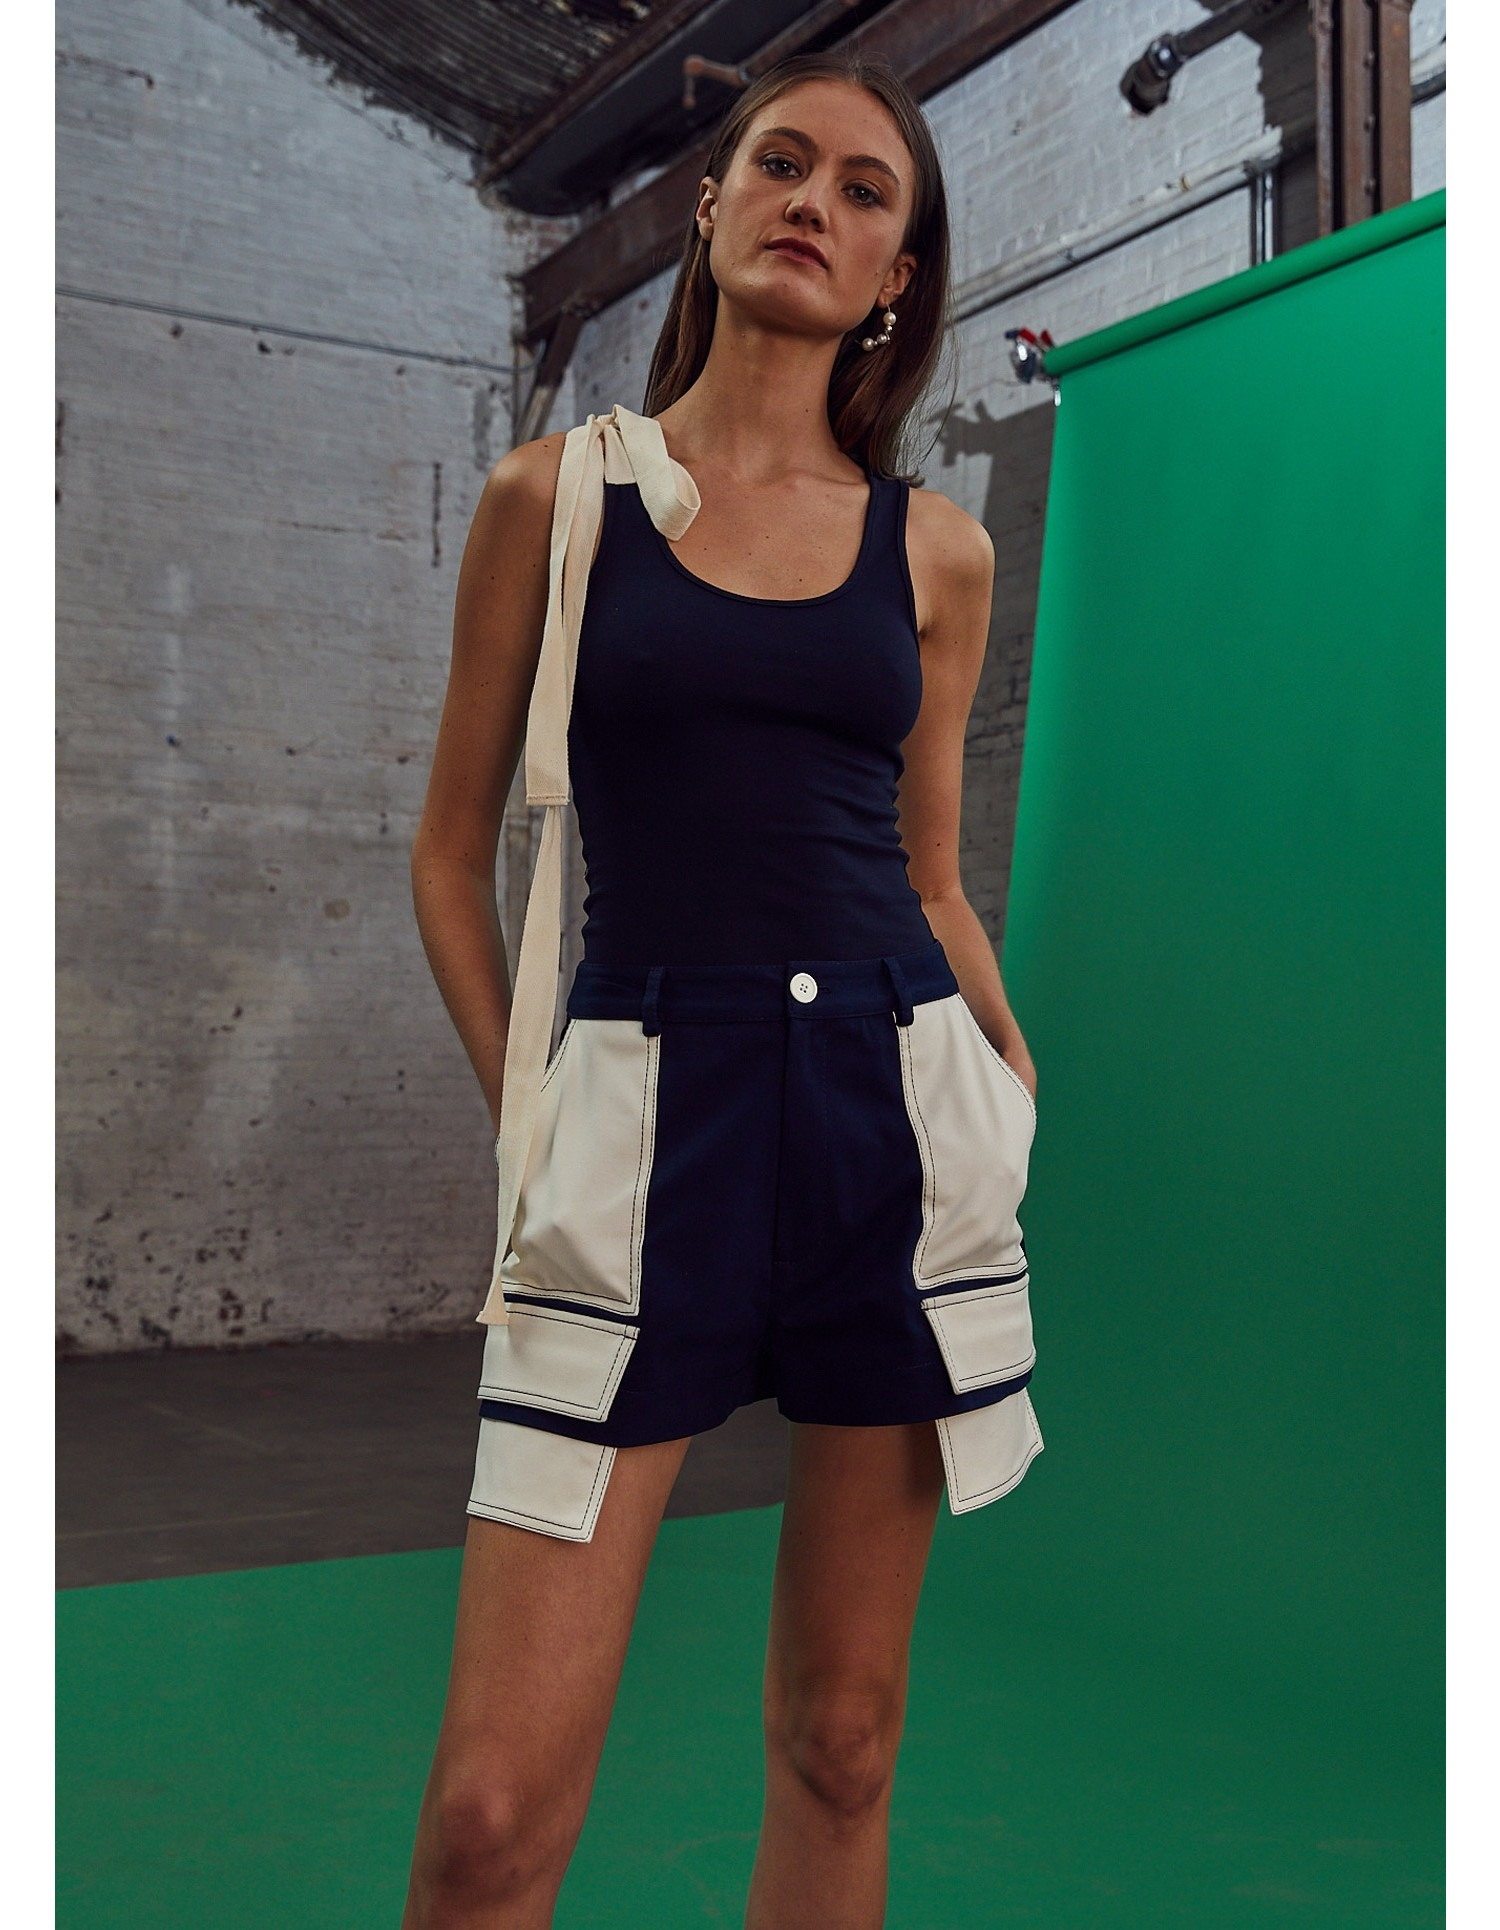 MONSE Extended Patch Pocket Shorts in Midnight and Ivory on Model Front View